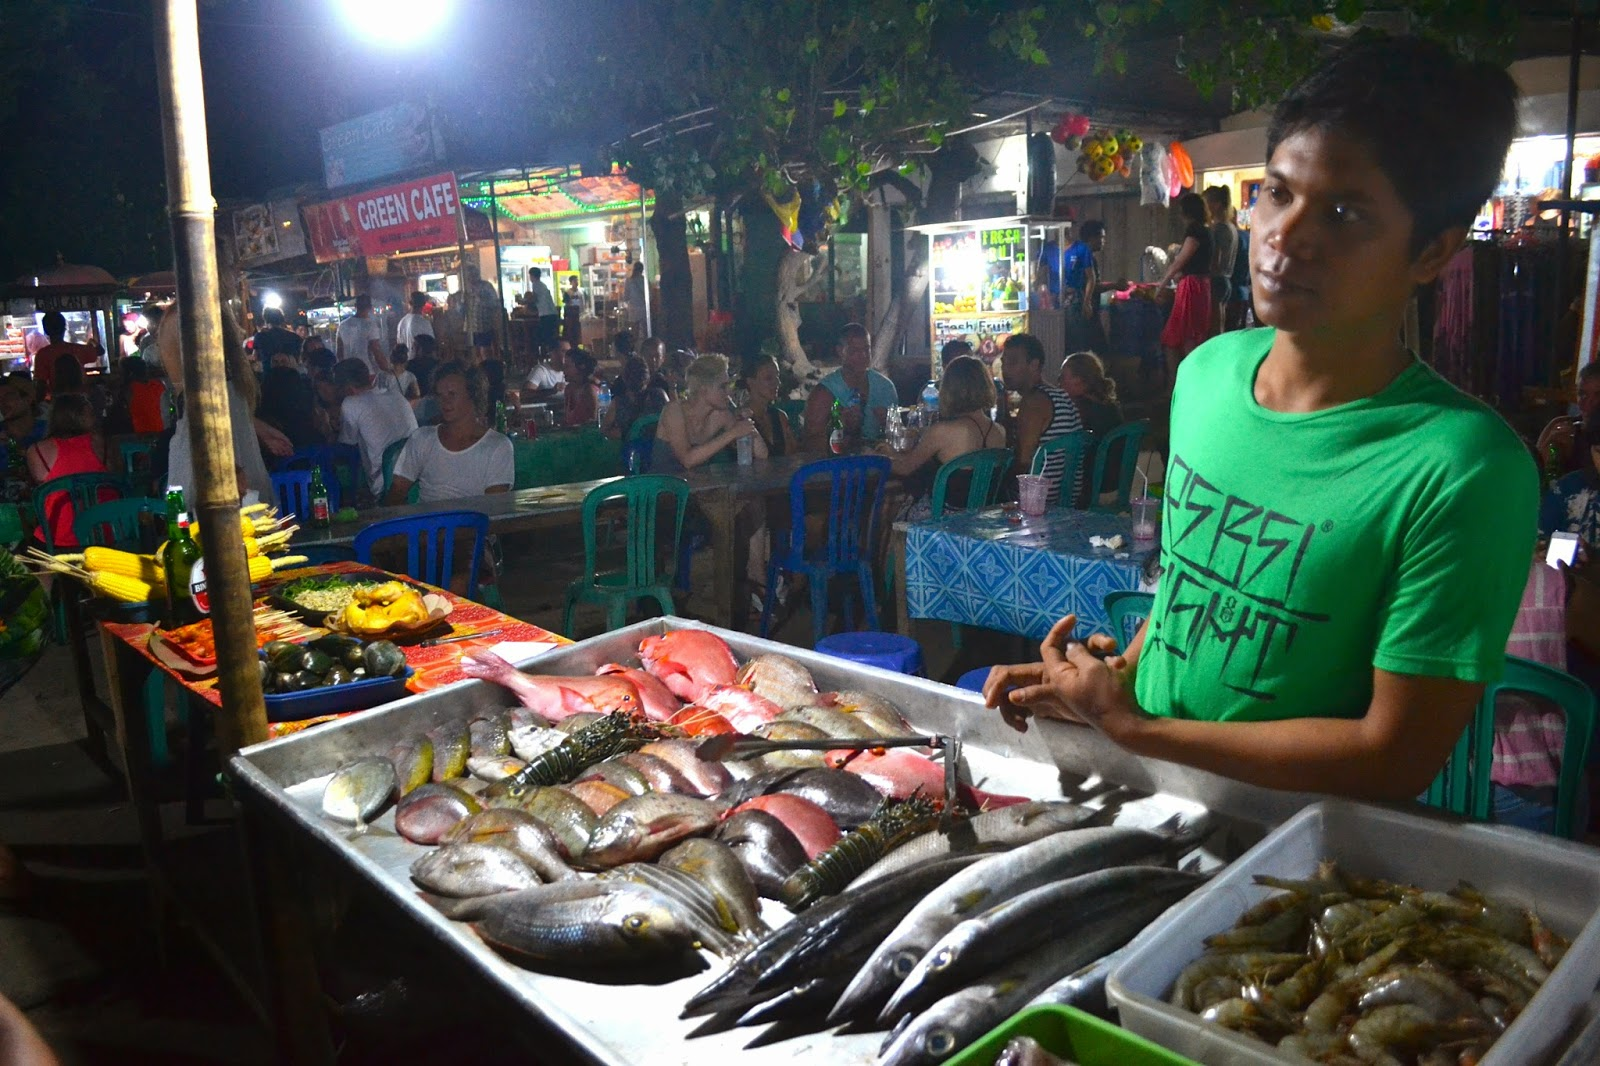 mercado local nocturno de Gili Trawangan, Indonesia